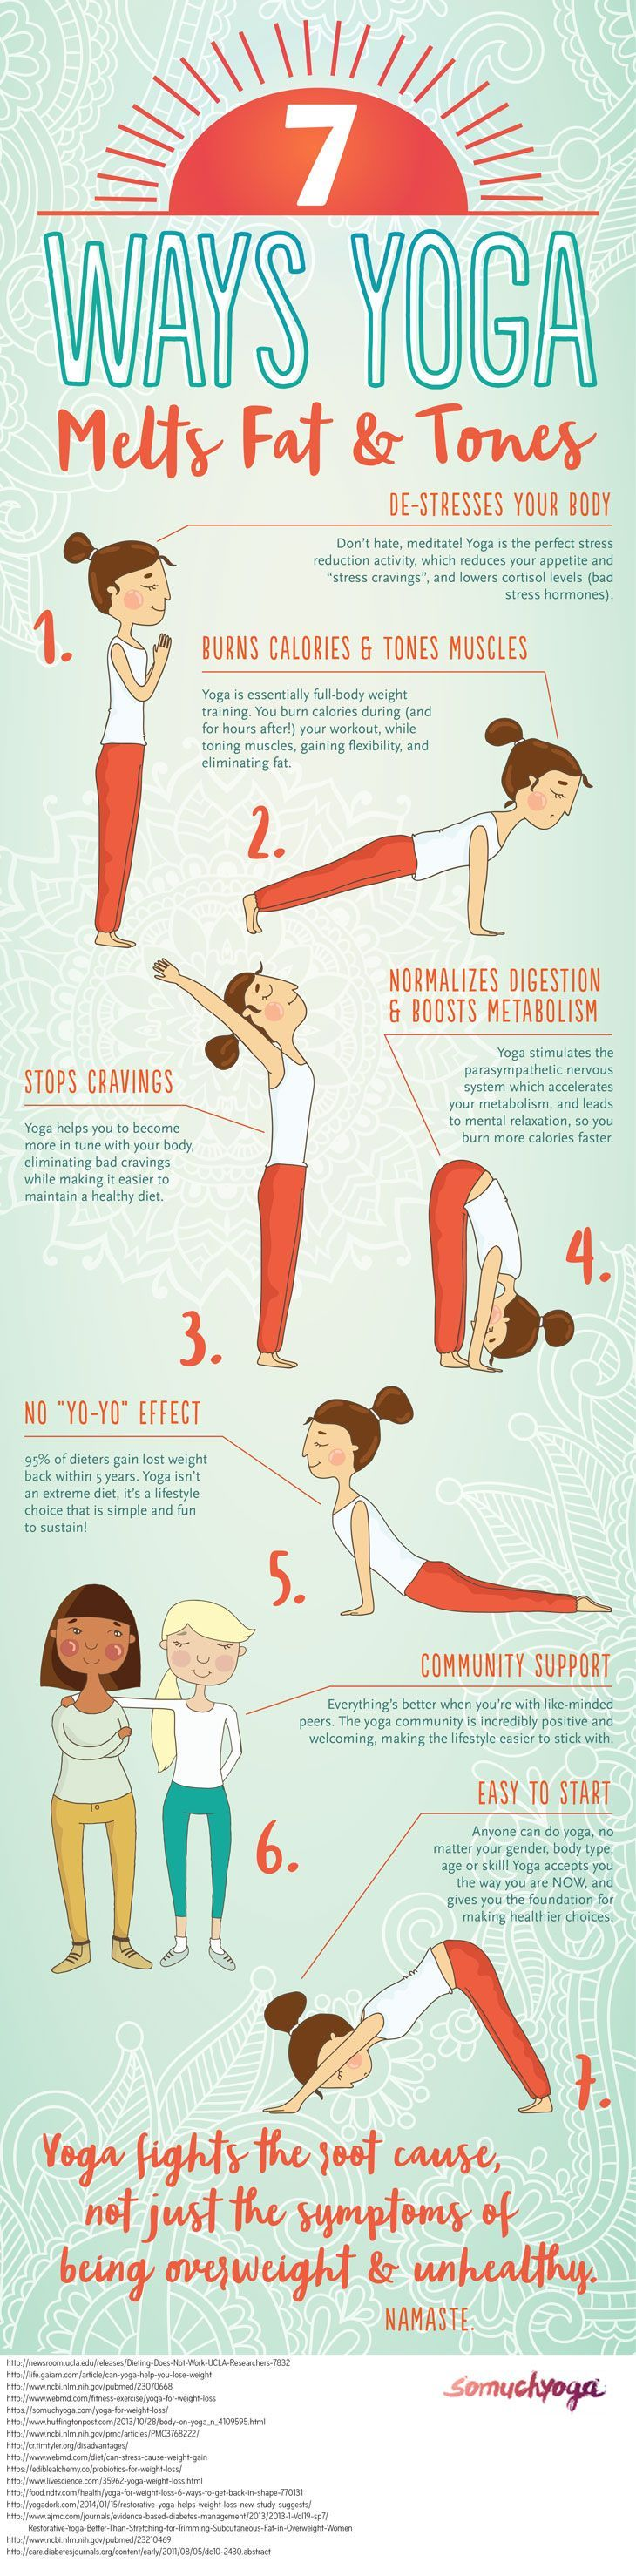 5+ Surprising Reasons Why Yoga Can Help You Shed More Pounds…